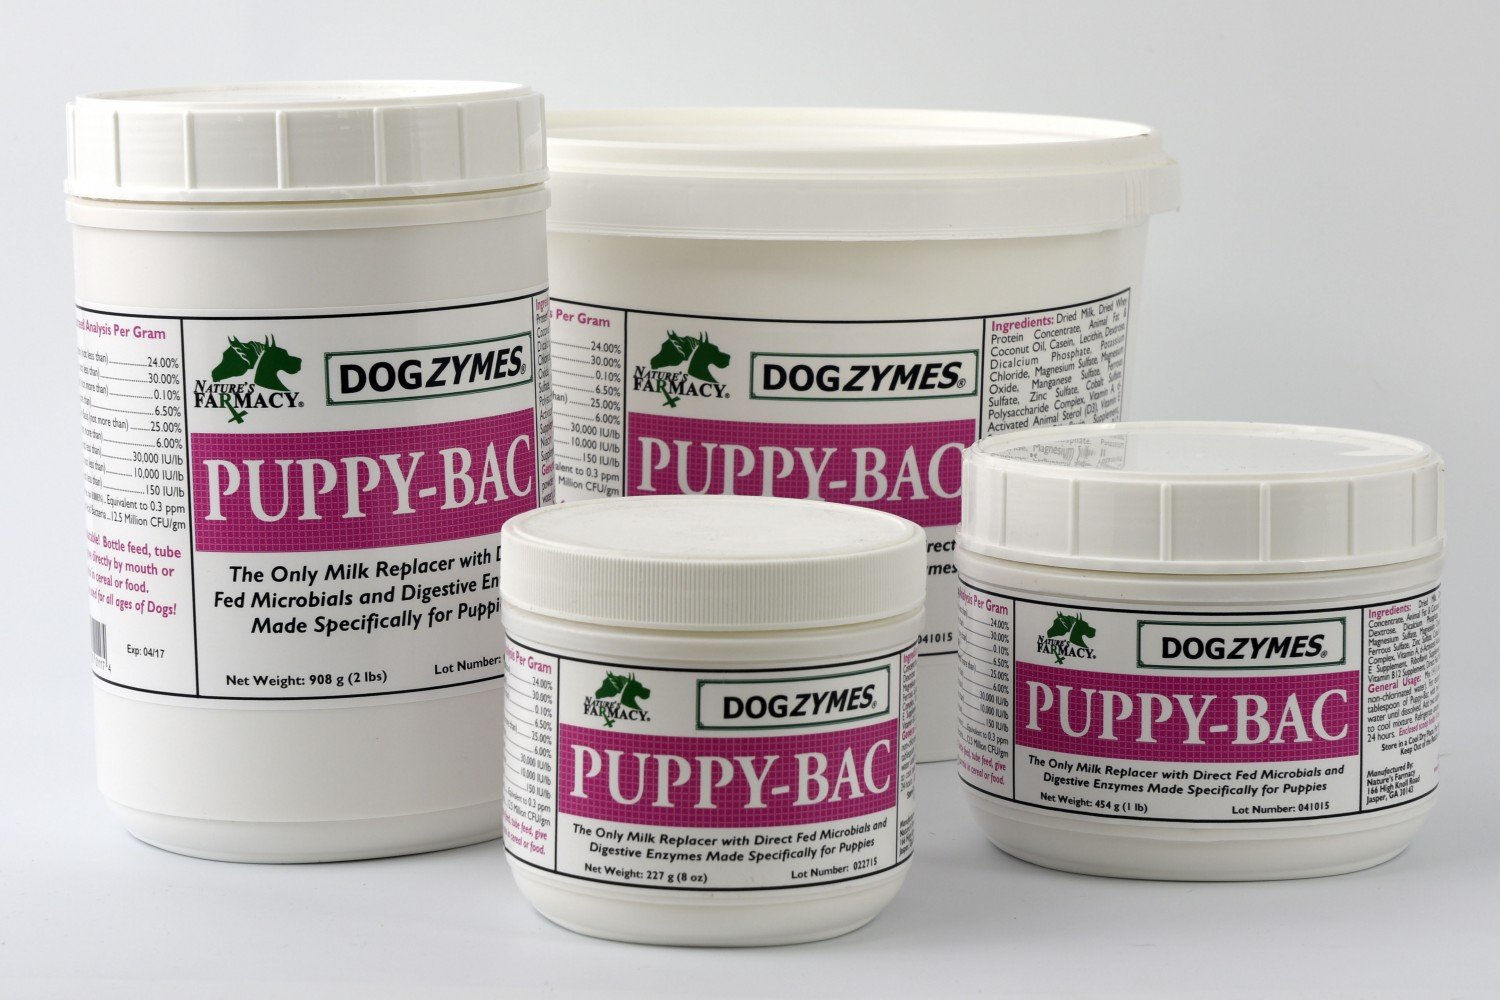 DOGZYMES Puppy Bac 8 Ounce